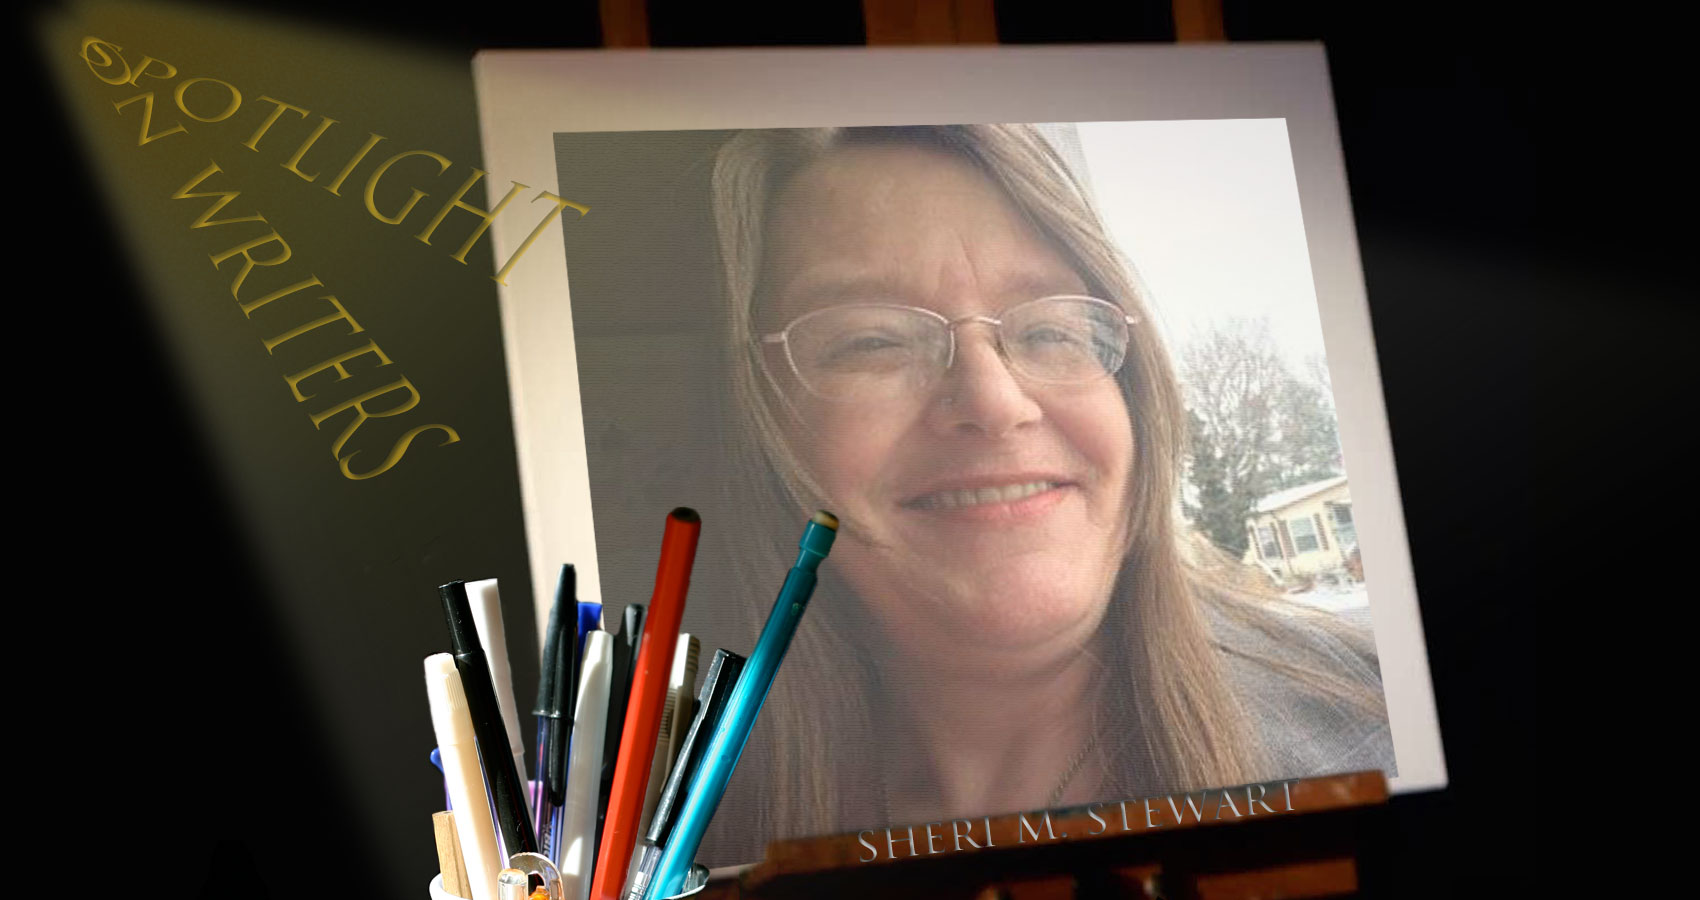 Spotlight On Writers - Sheri M. Stewart, an interview at Spillwords.com